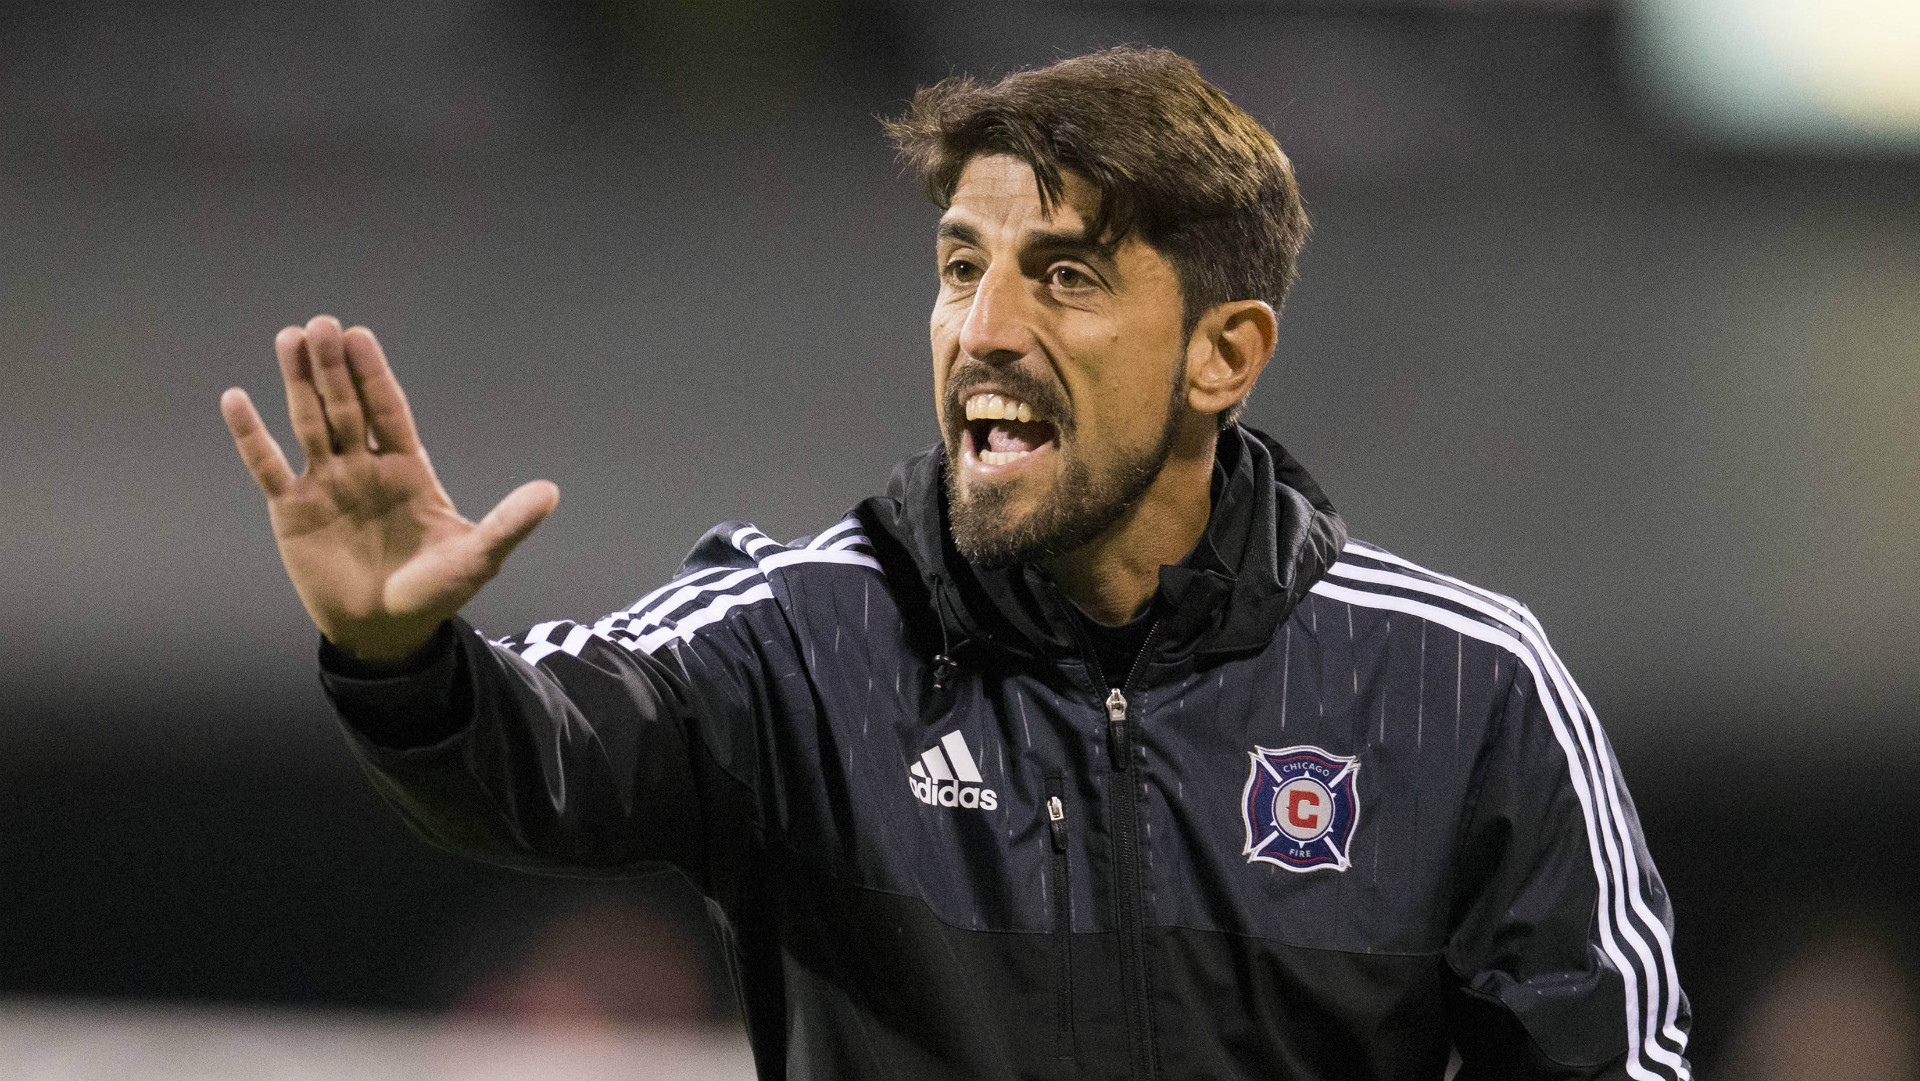 Veljko-paunovic-chicago-fire_1e1775okcbgg71fkmt4sgh70xp